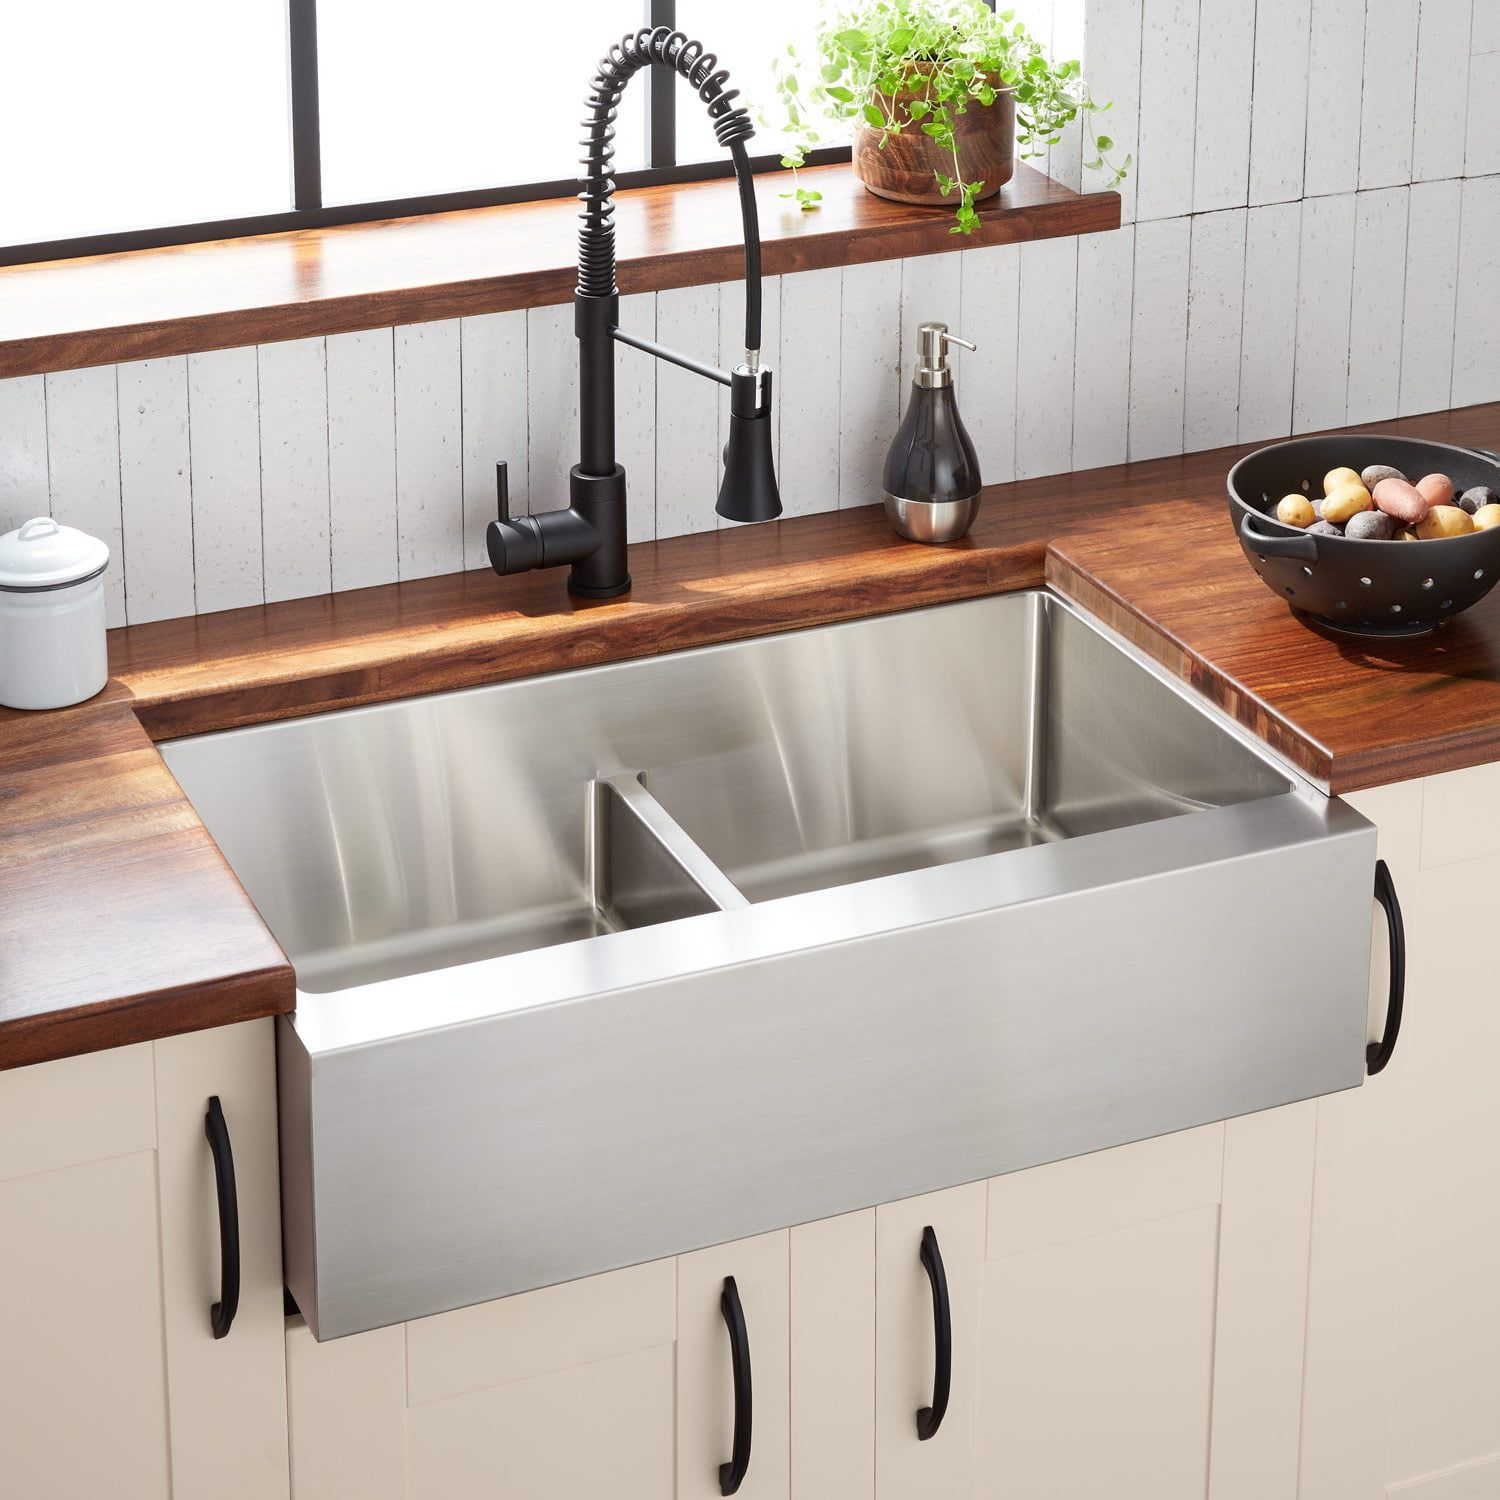 34 sitka doublebowl stainless steel farmhouse sink